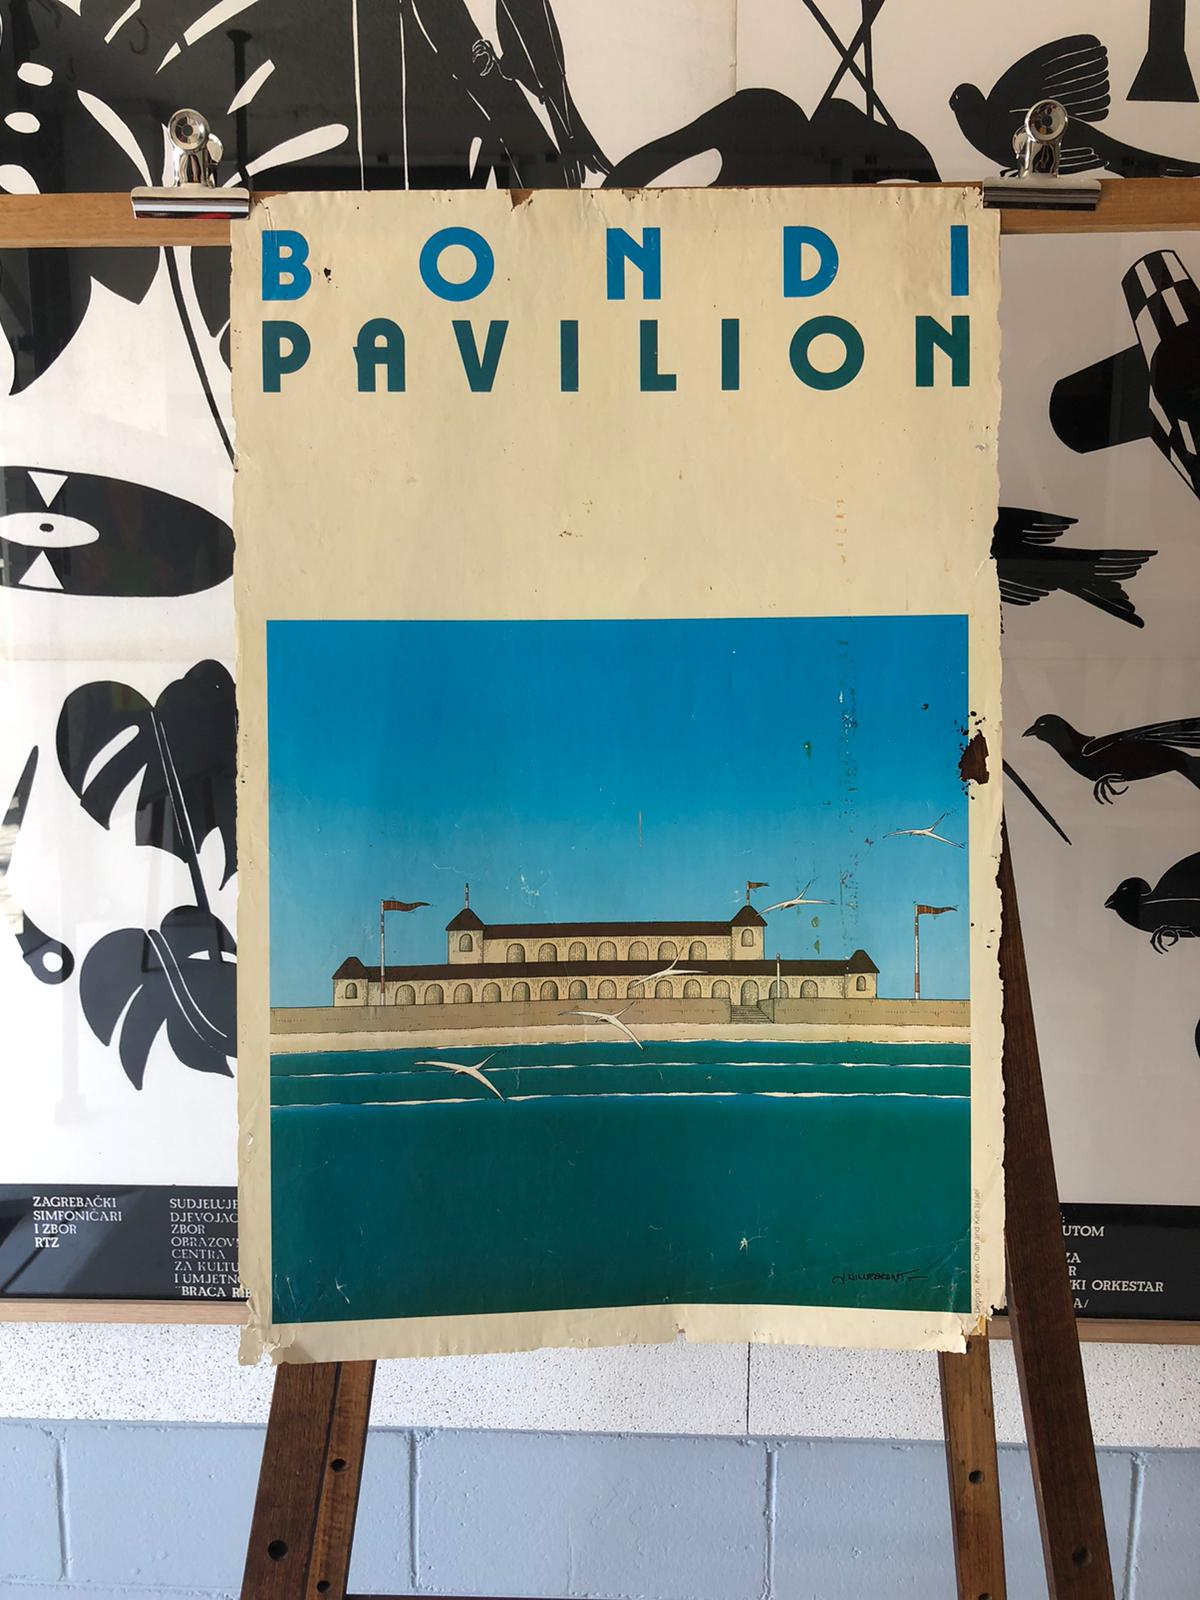 Bondi Pavilion by Willebrant